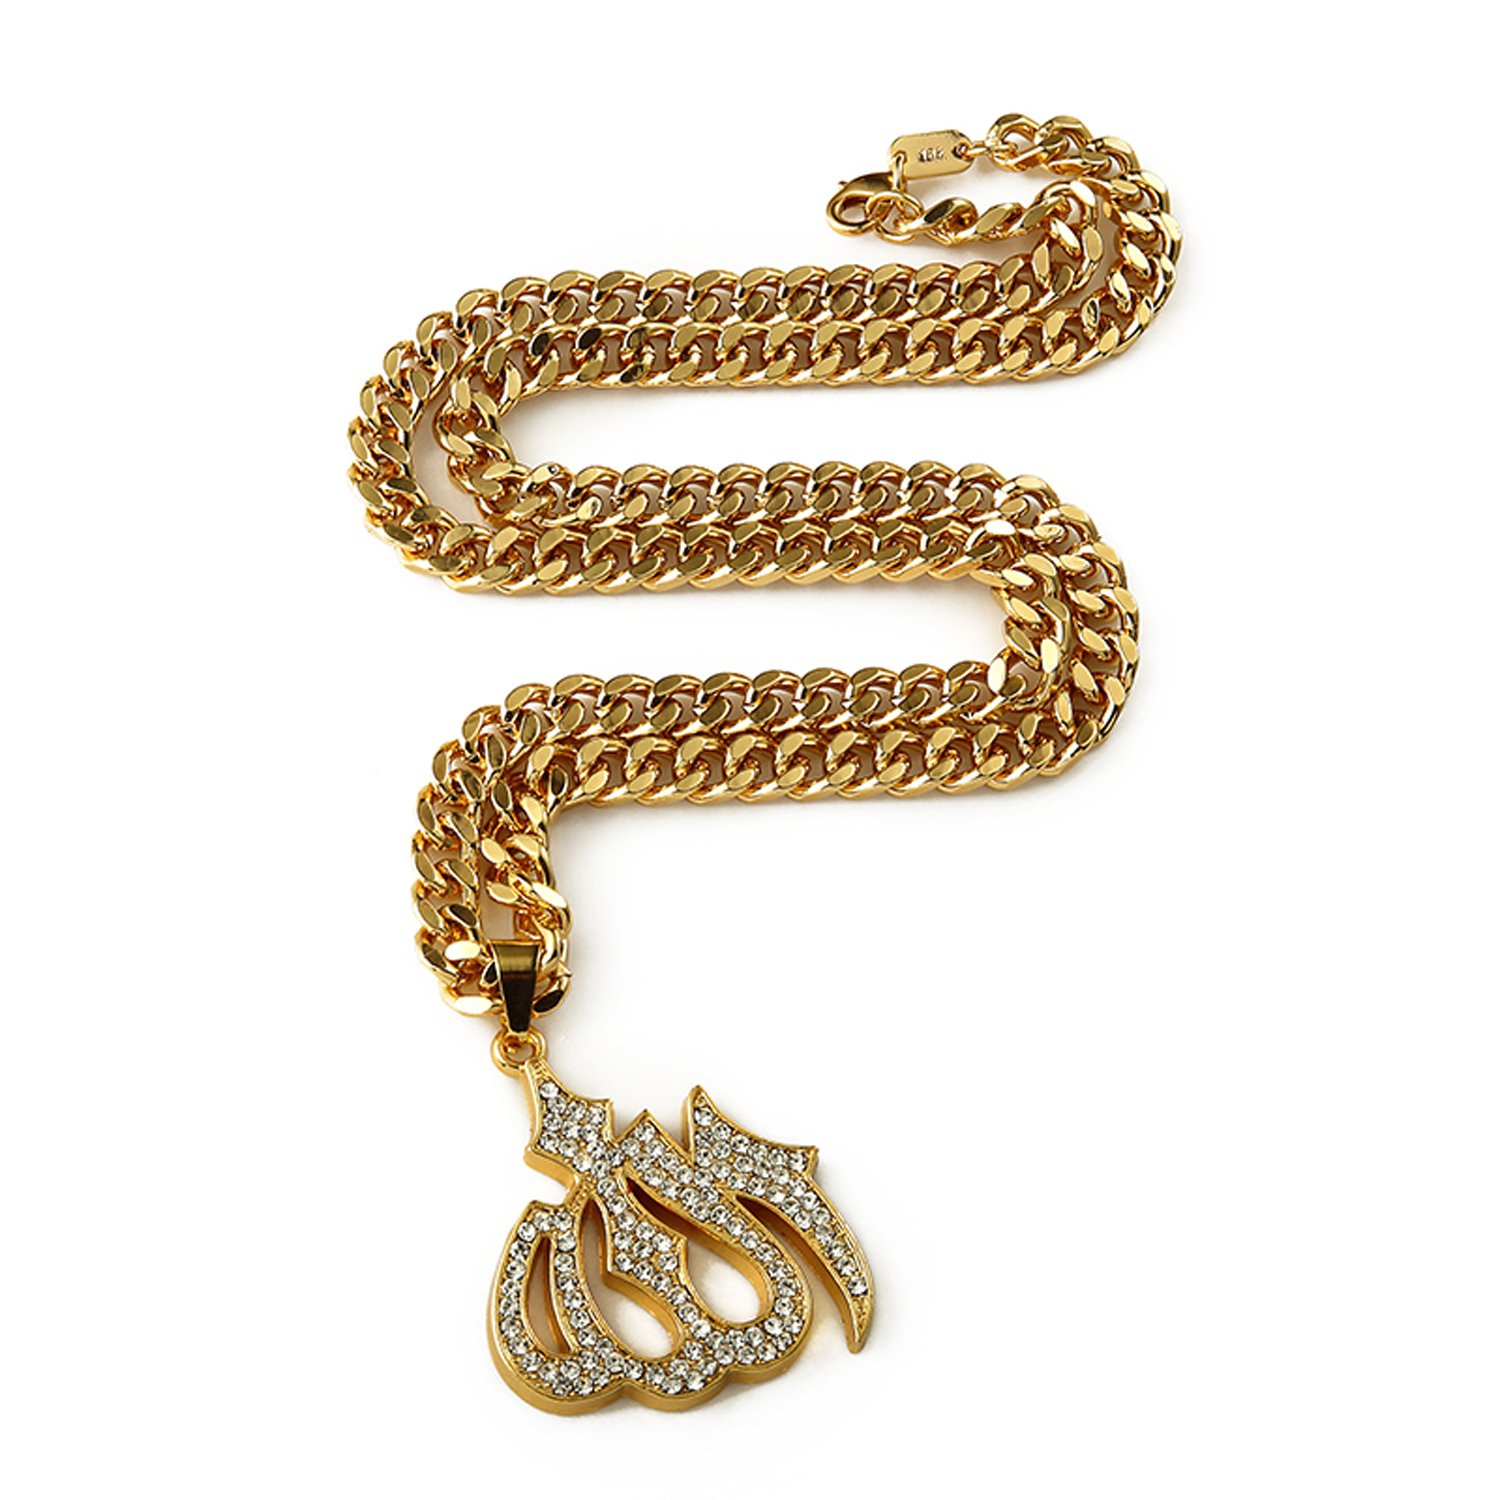 Large Shiny Gold Allah Pendant With Rhinestones On 30-inch Gold Rollo Chain - Muslim Hip Hop Jewelry